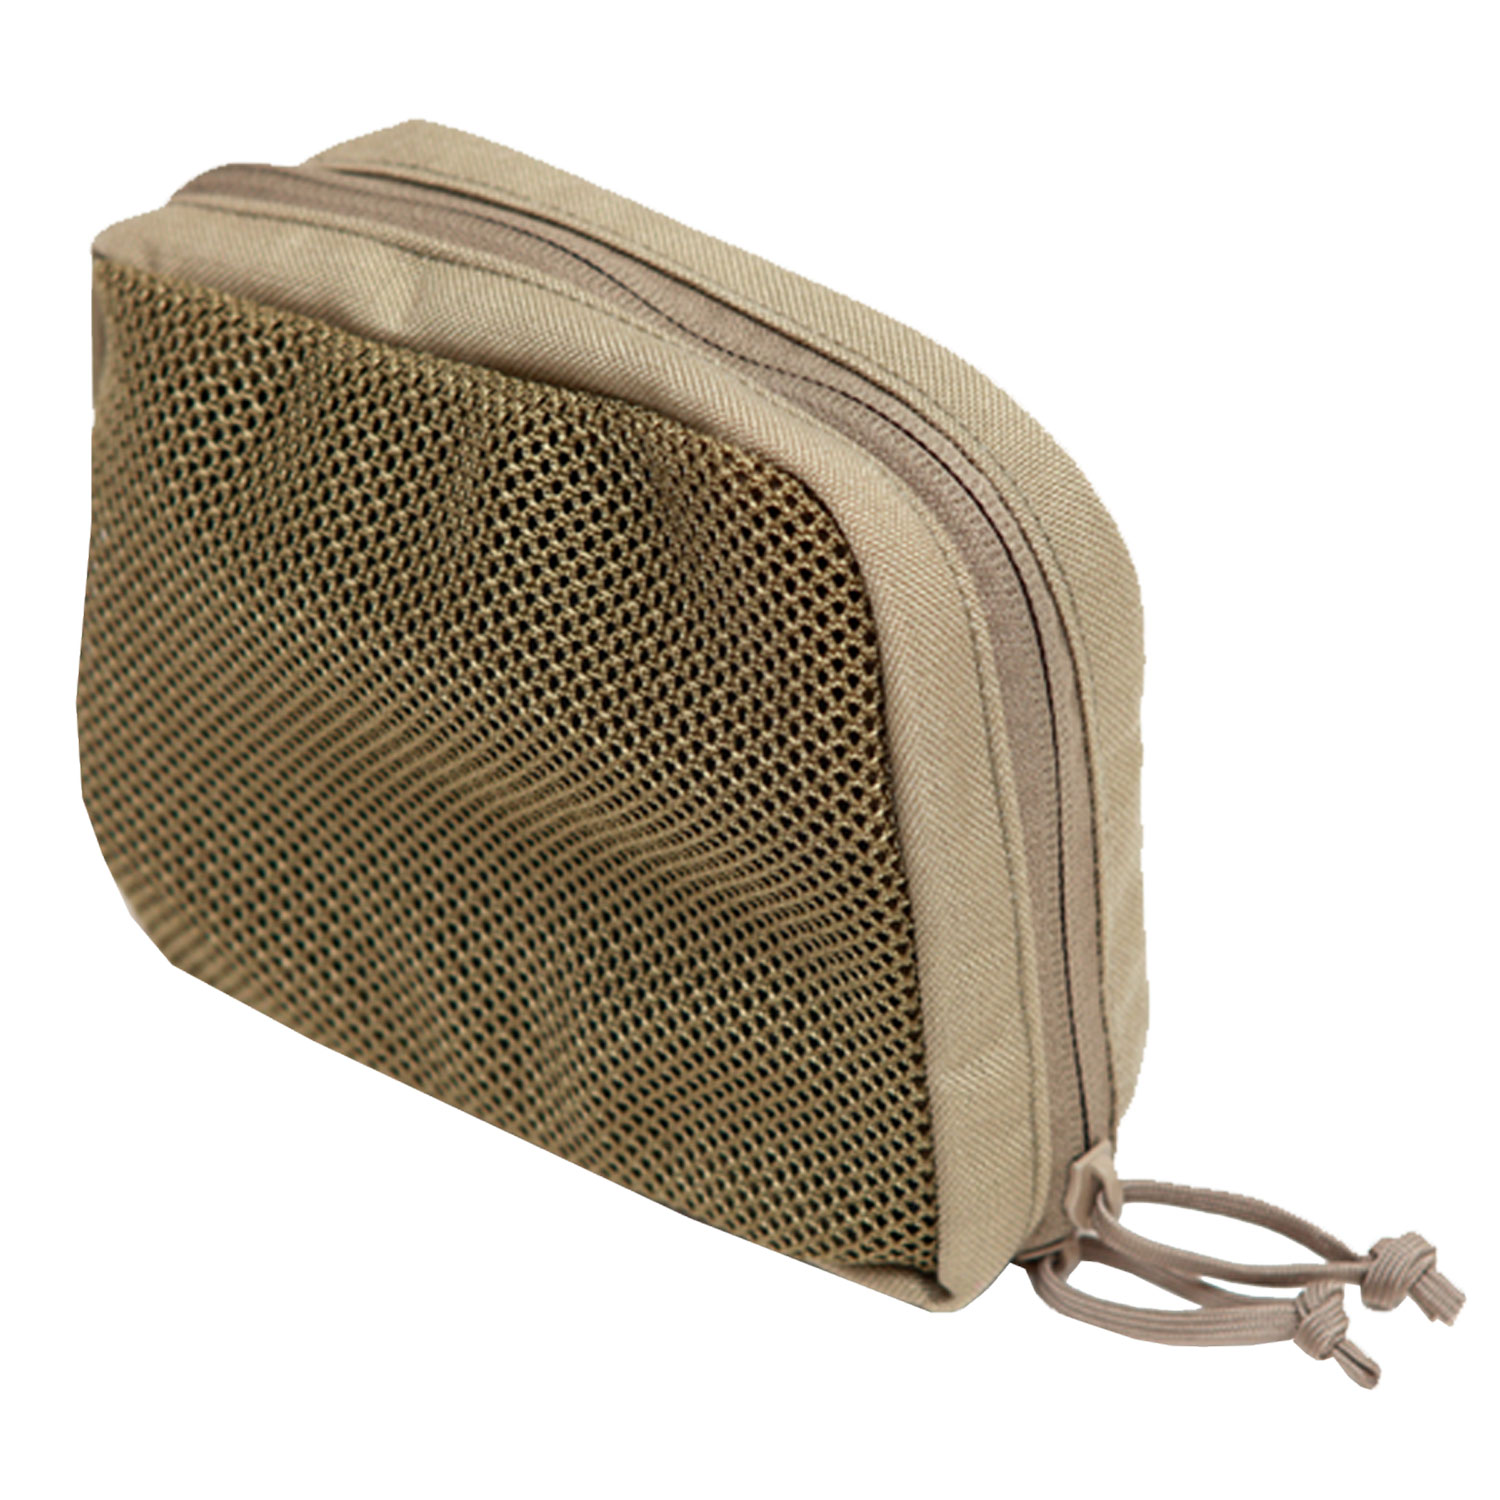 LBX Kletttasche Medium Mesh Pouch coyote tan